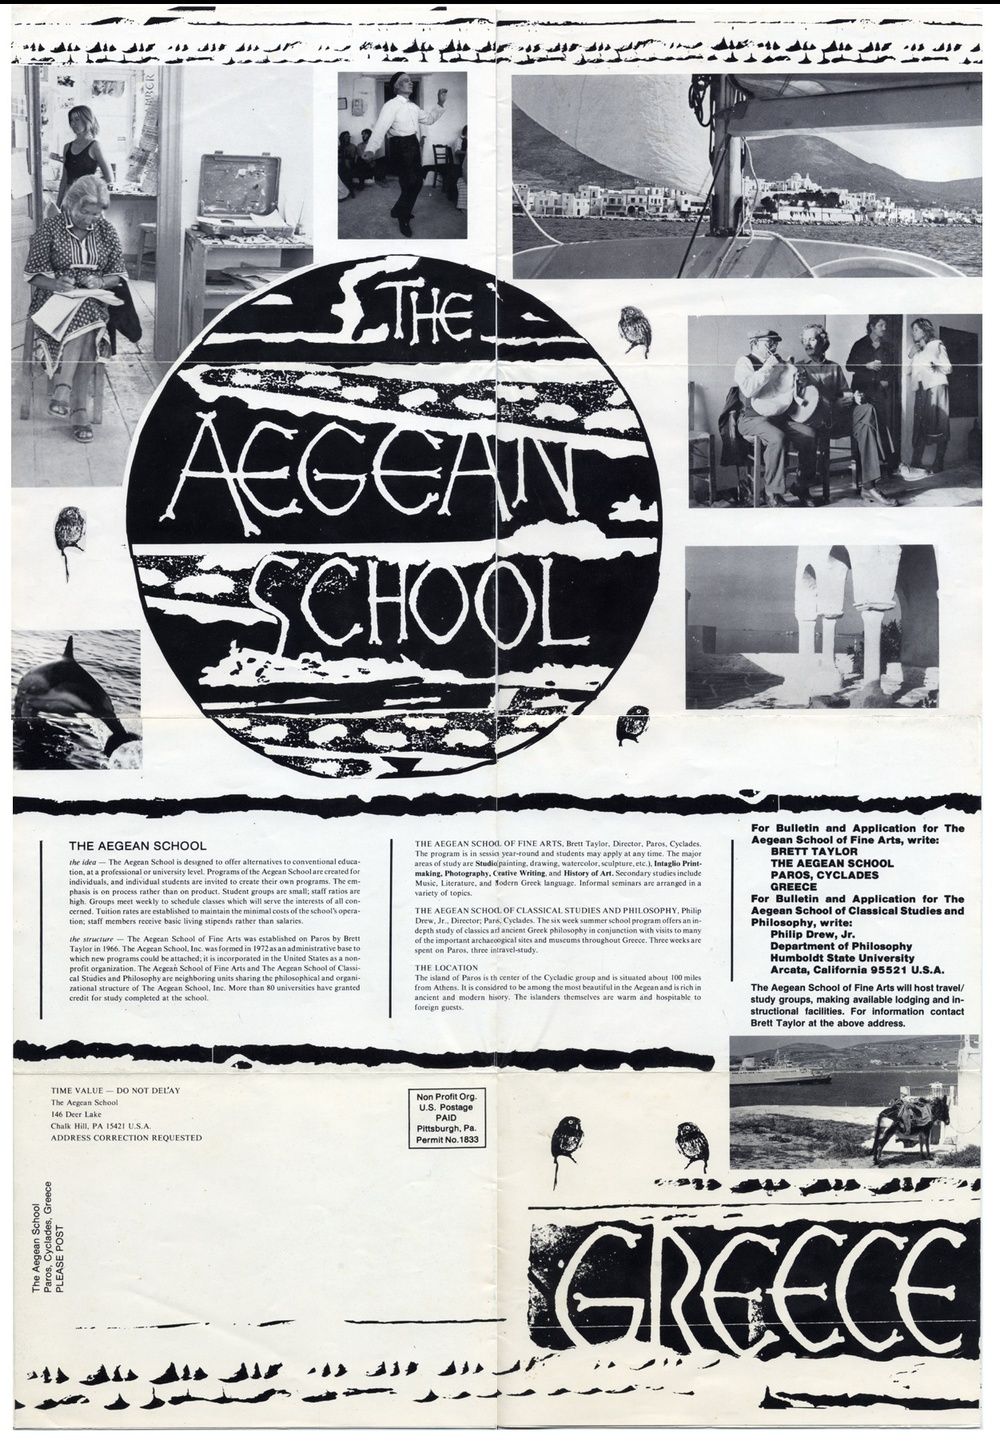 The 1980 poster and brochure